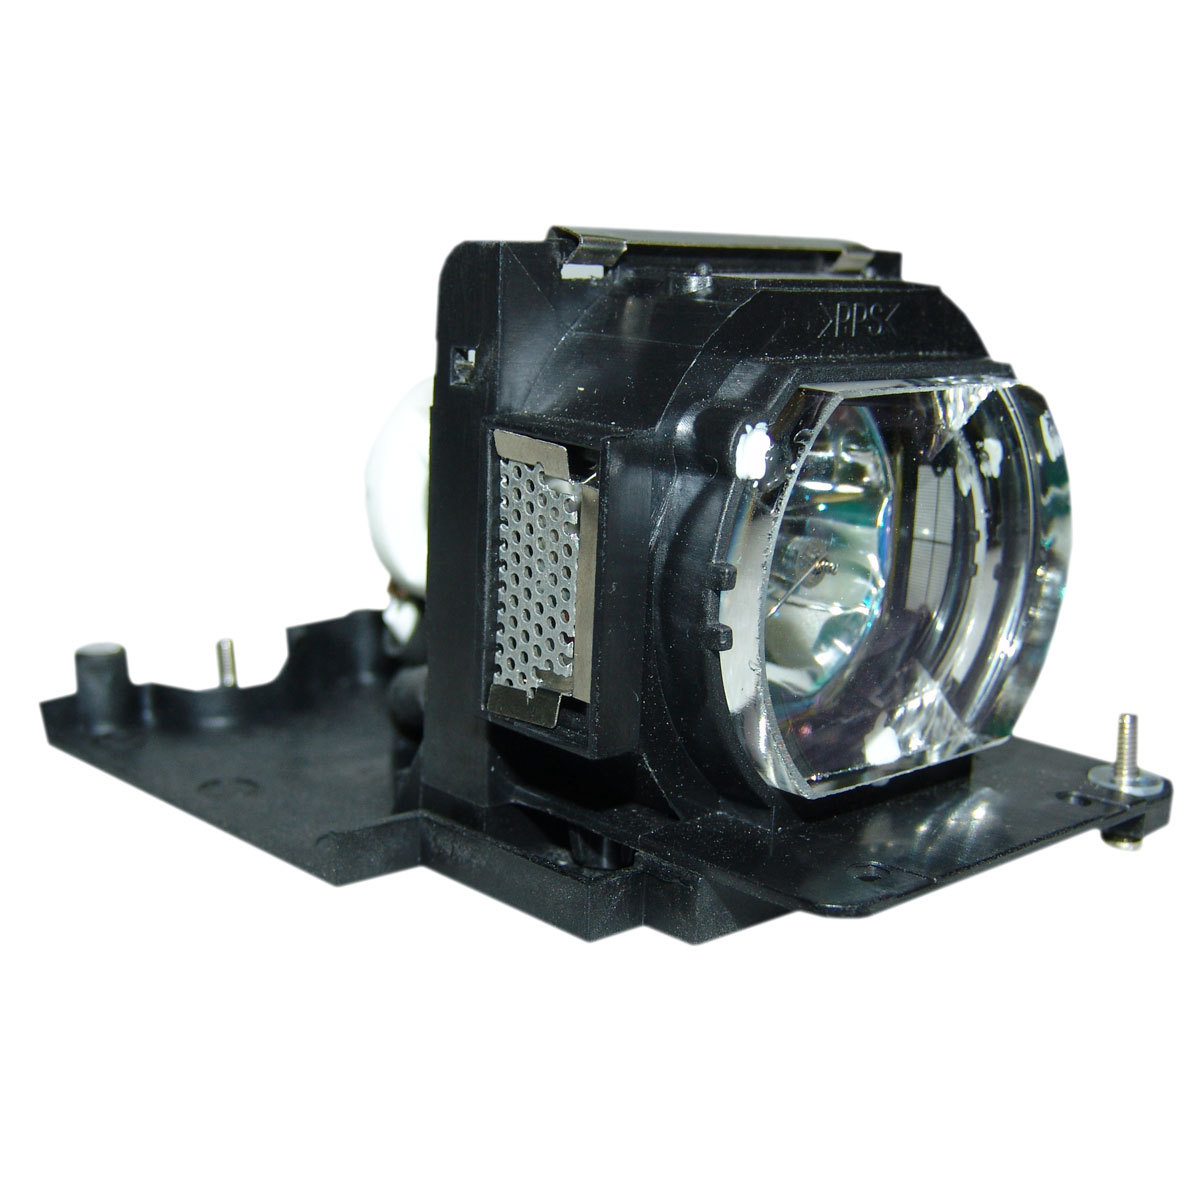 Primary image for Geha 60-201913 Compatible Projector Lamp Module